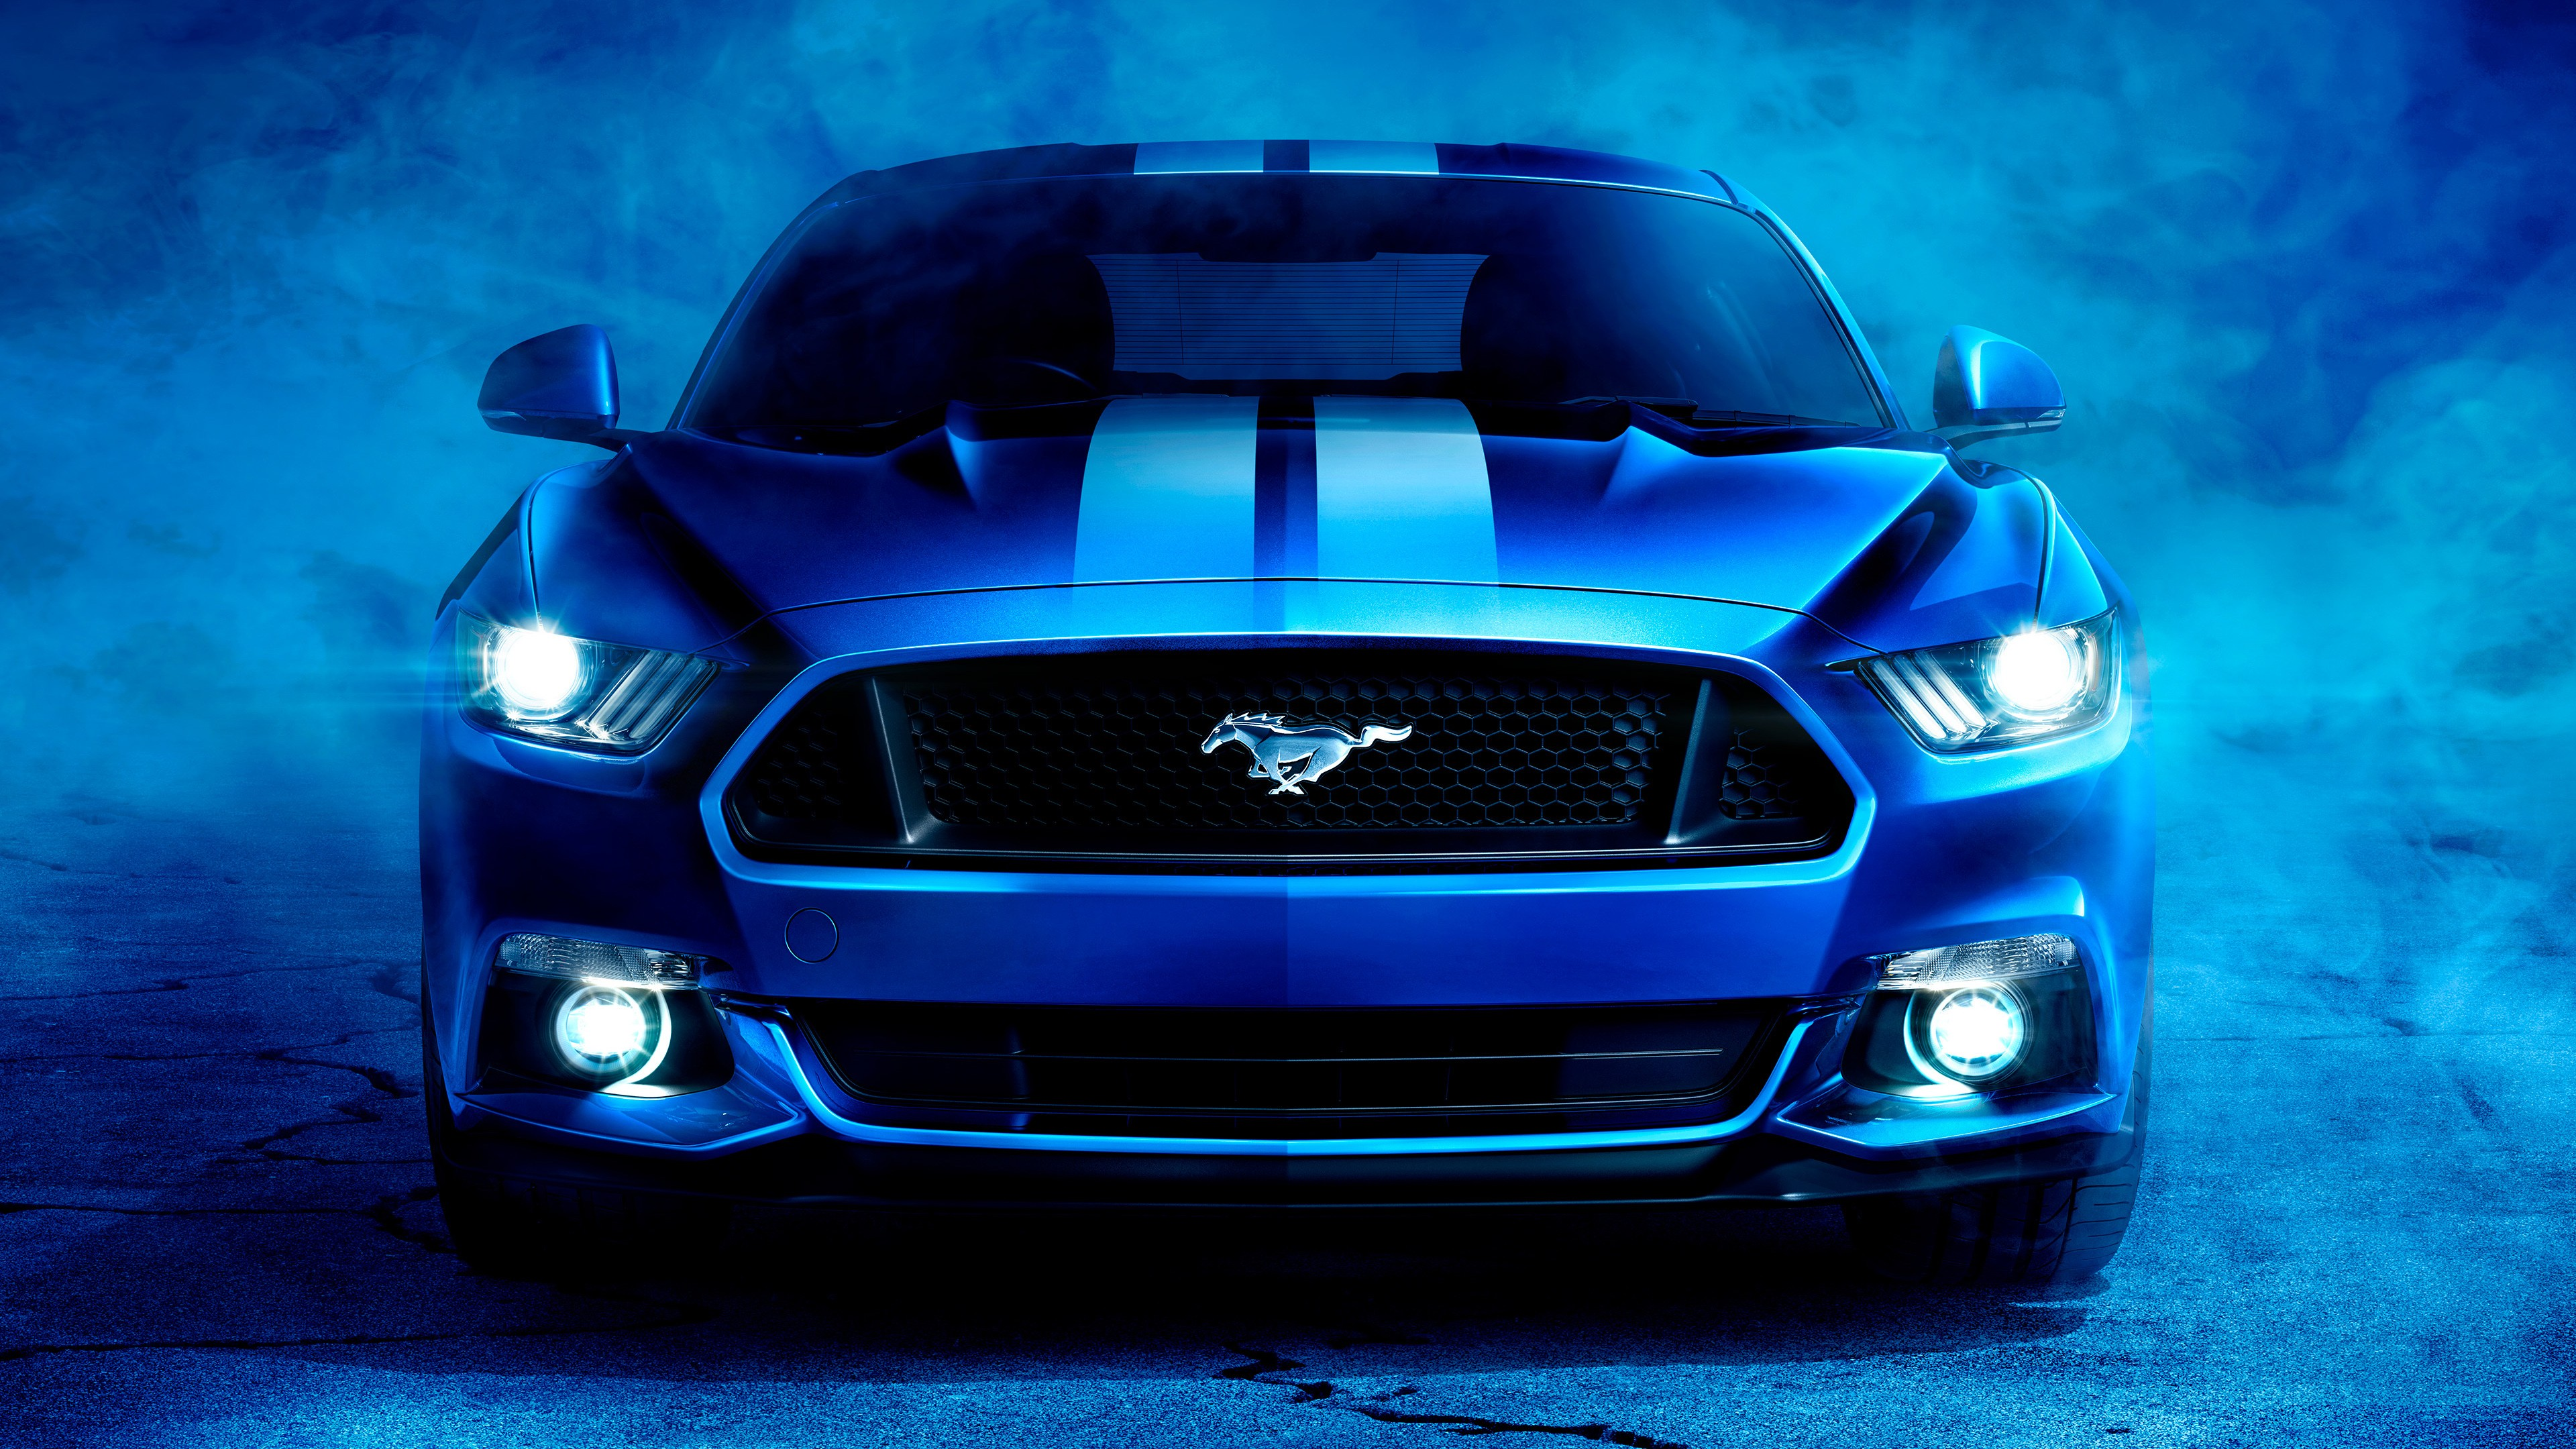 4k mustang ford wallpapers shelby hd ultra cars 2160 3840 1080 1920 war 1440 1366 2560 avengers infinity machine hdwallpaperslife